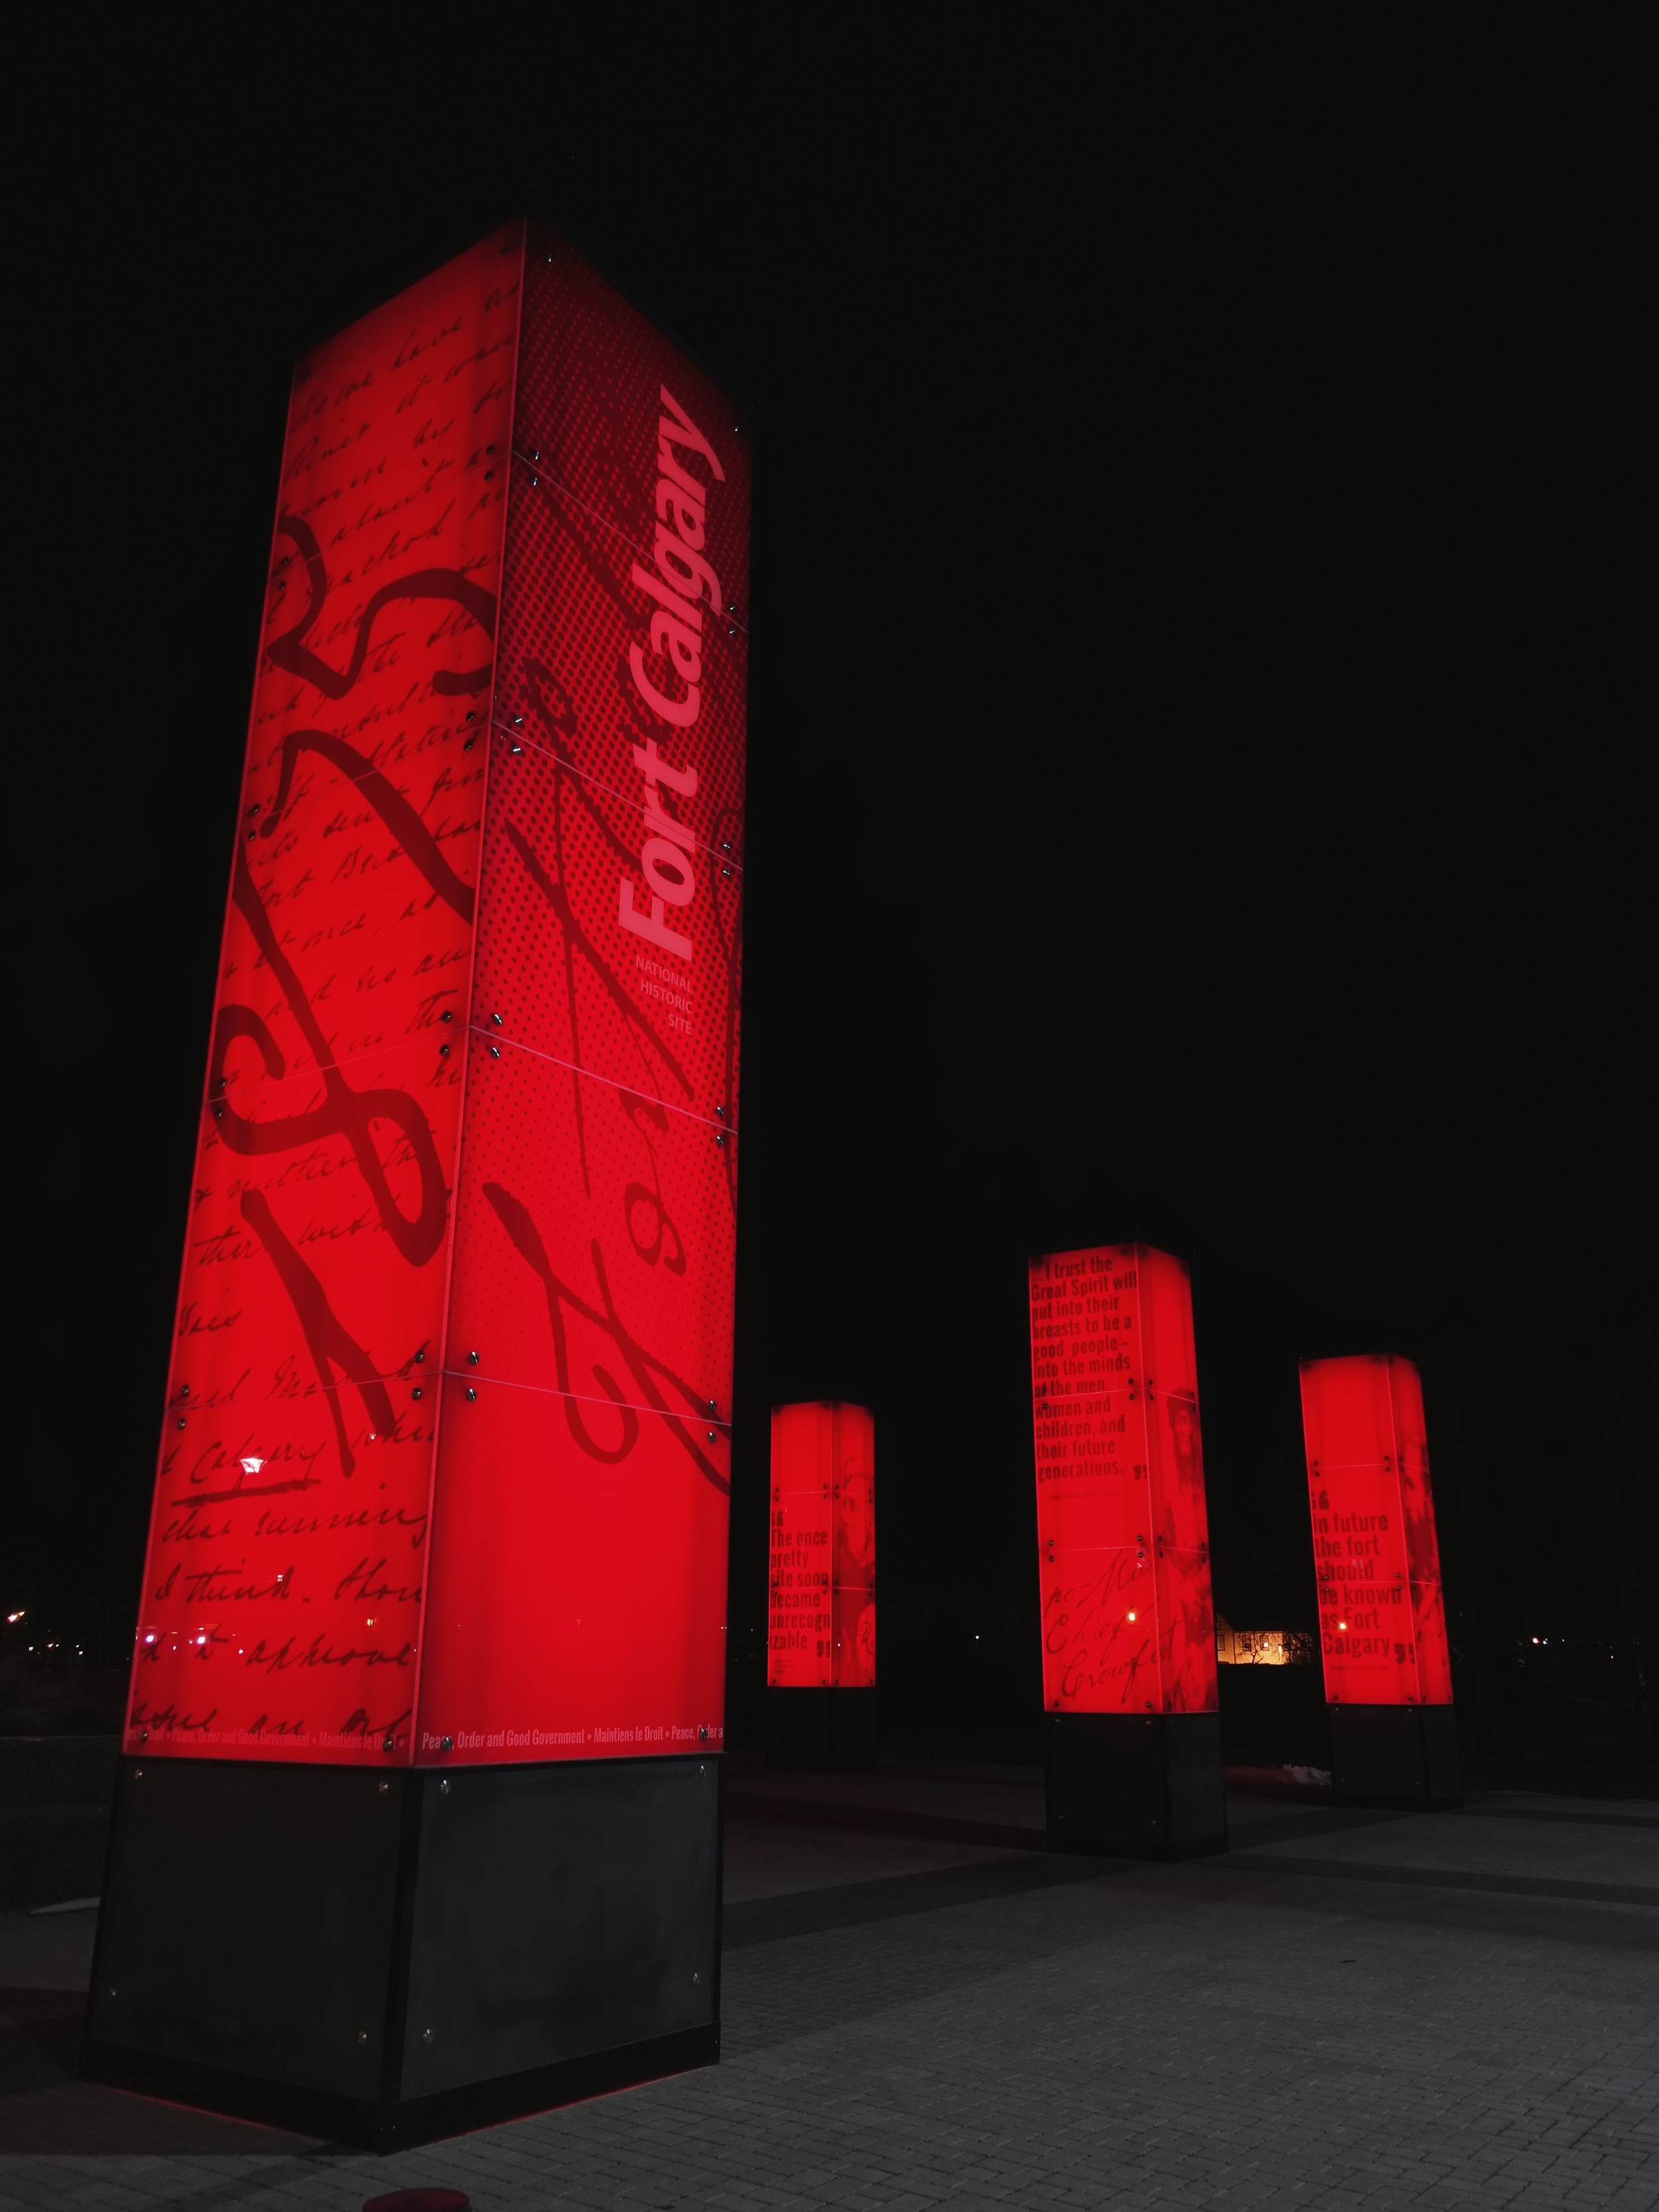 Fort Calgary's sentinels look like burning iron ingots at night, but the sidewalk and park are covered blackness.